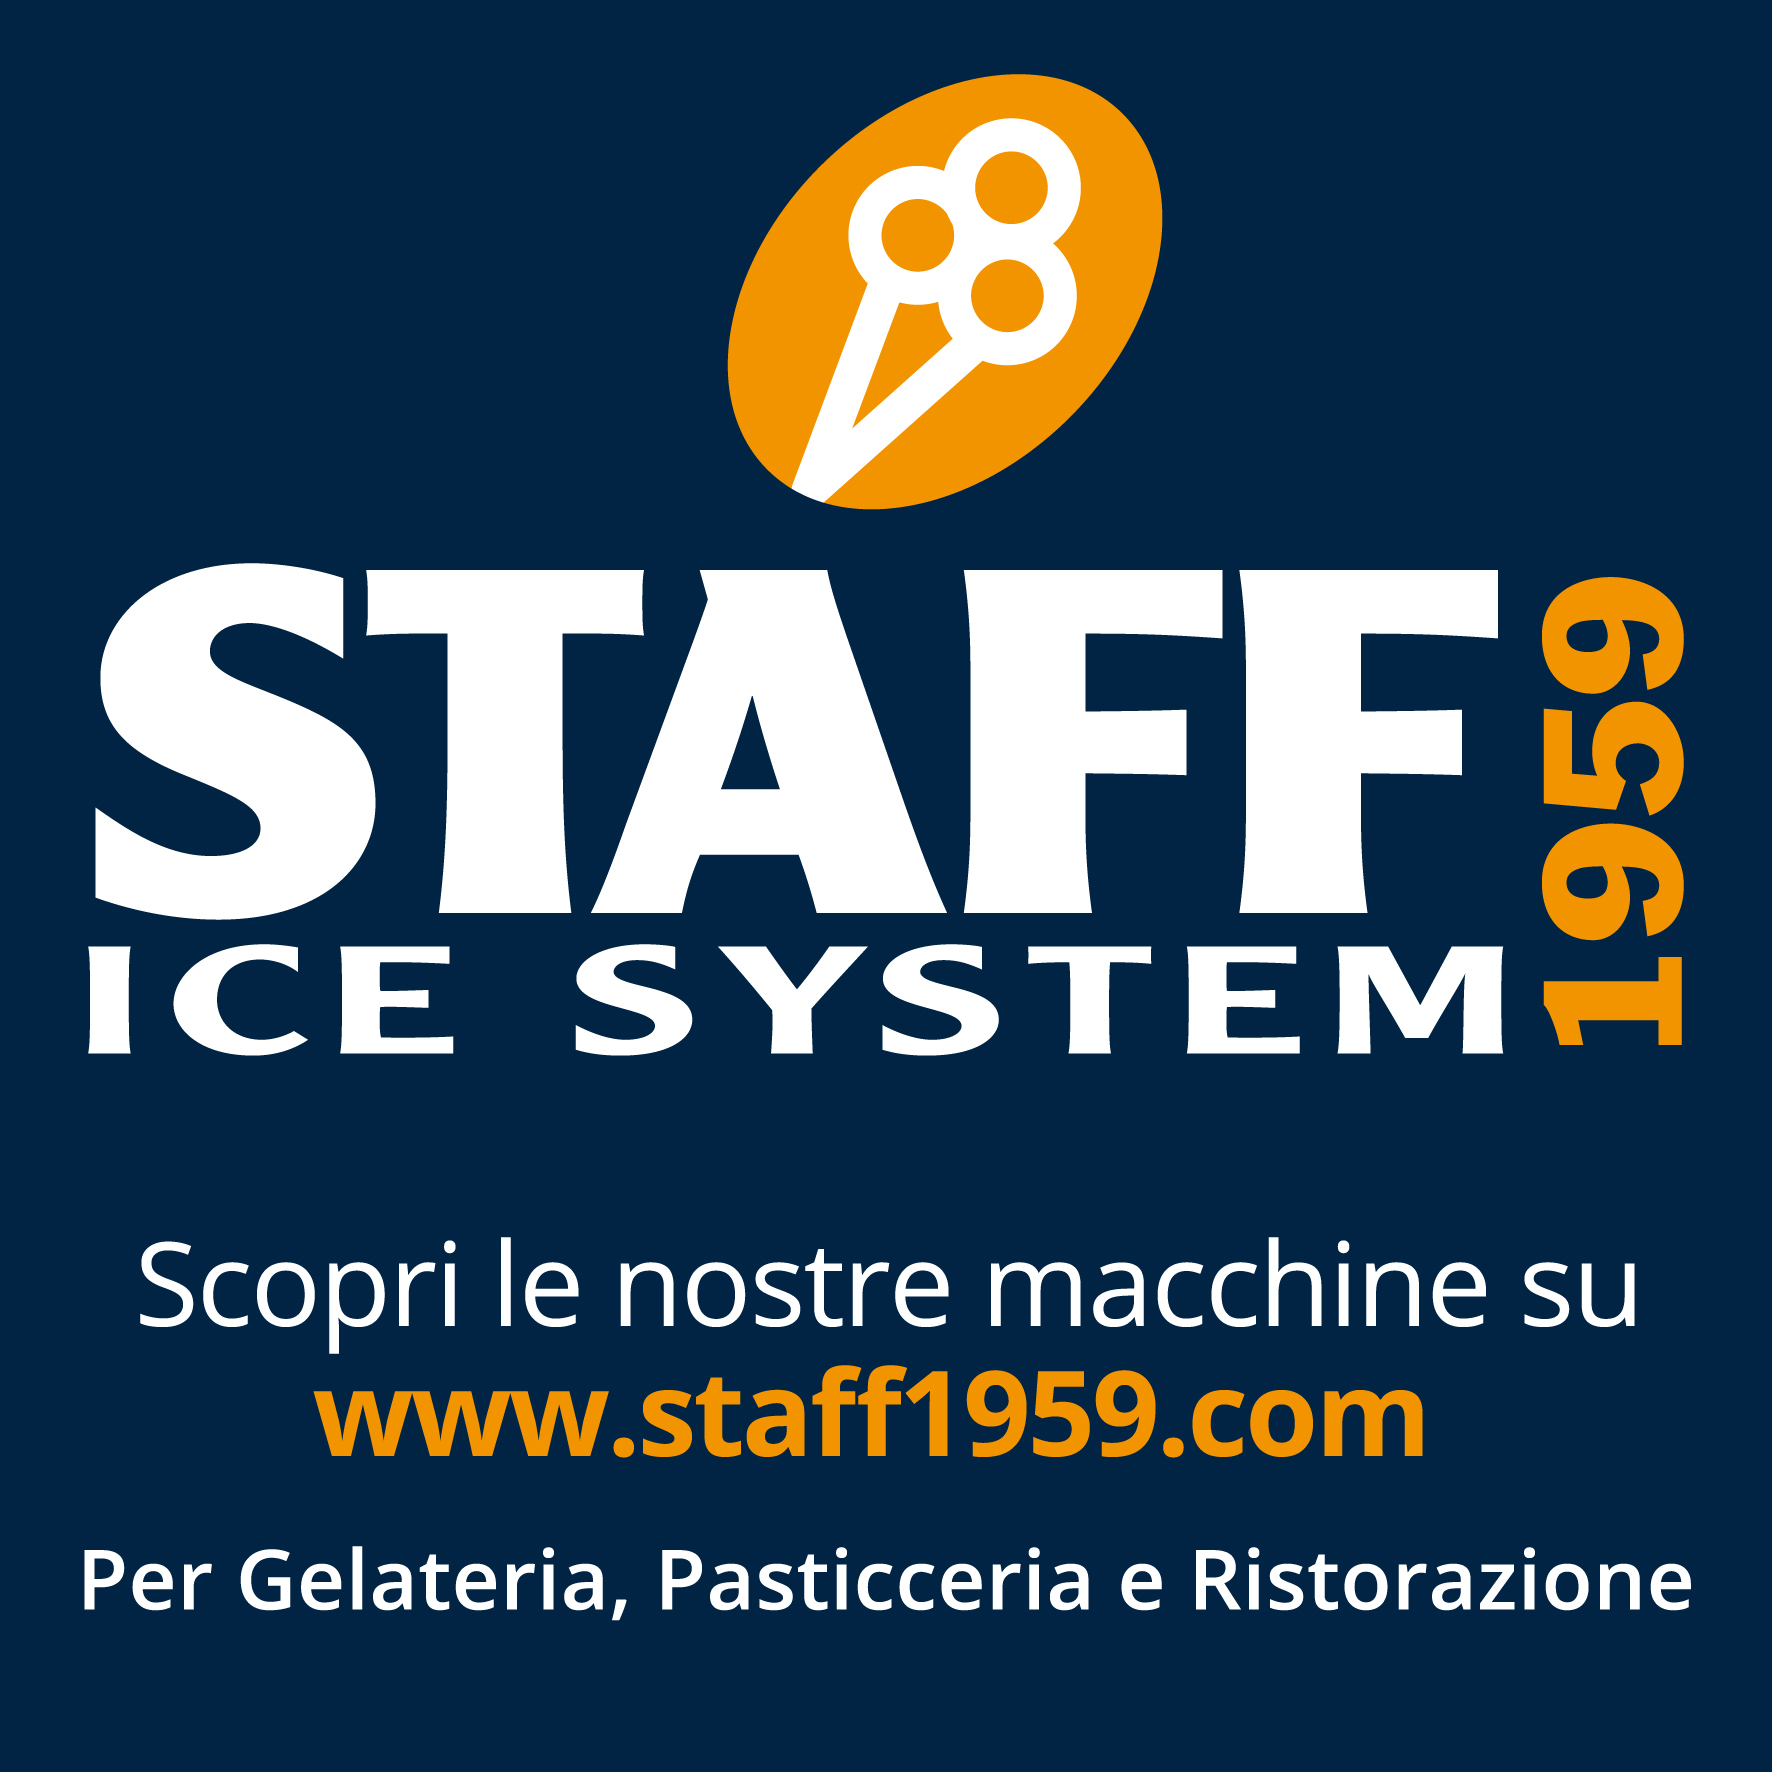 BOX BANNER 150x150 px Pasticceria extra staff ice system